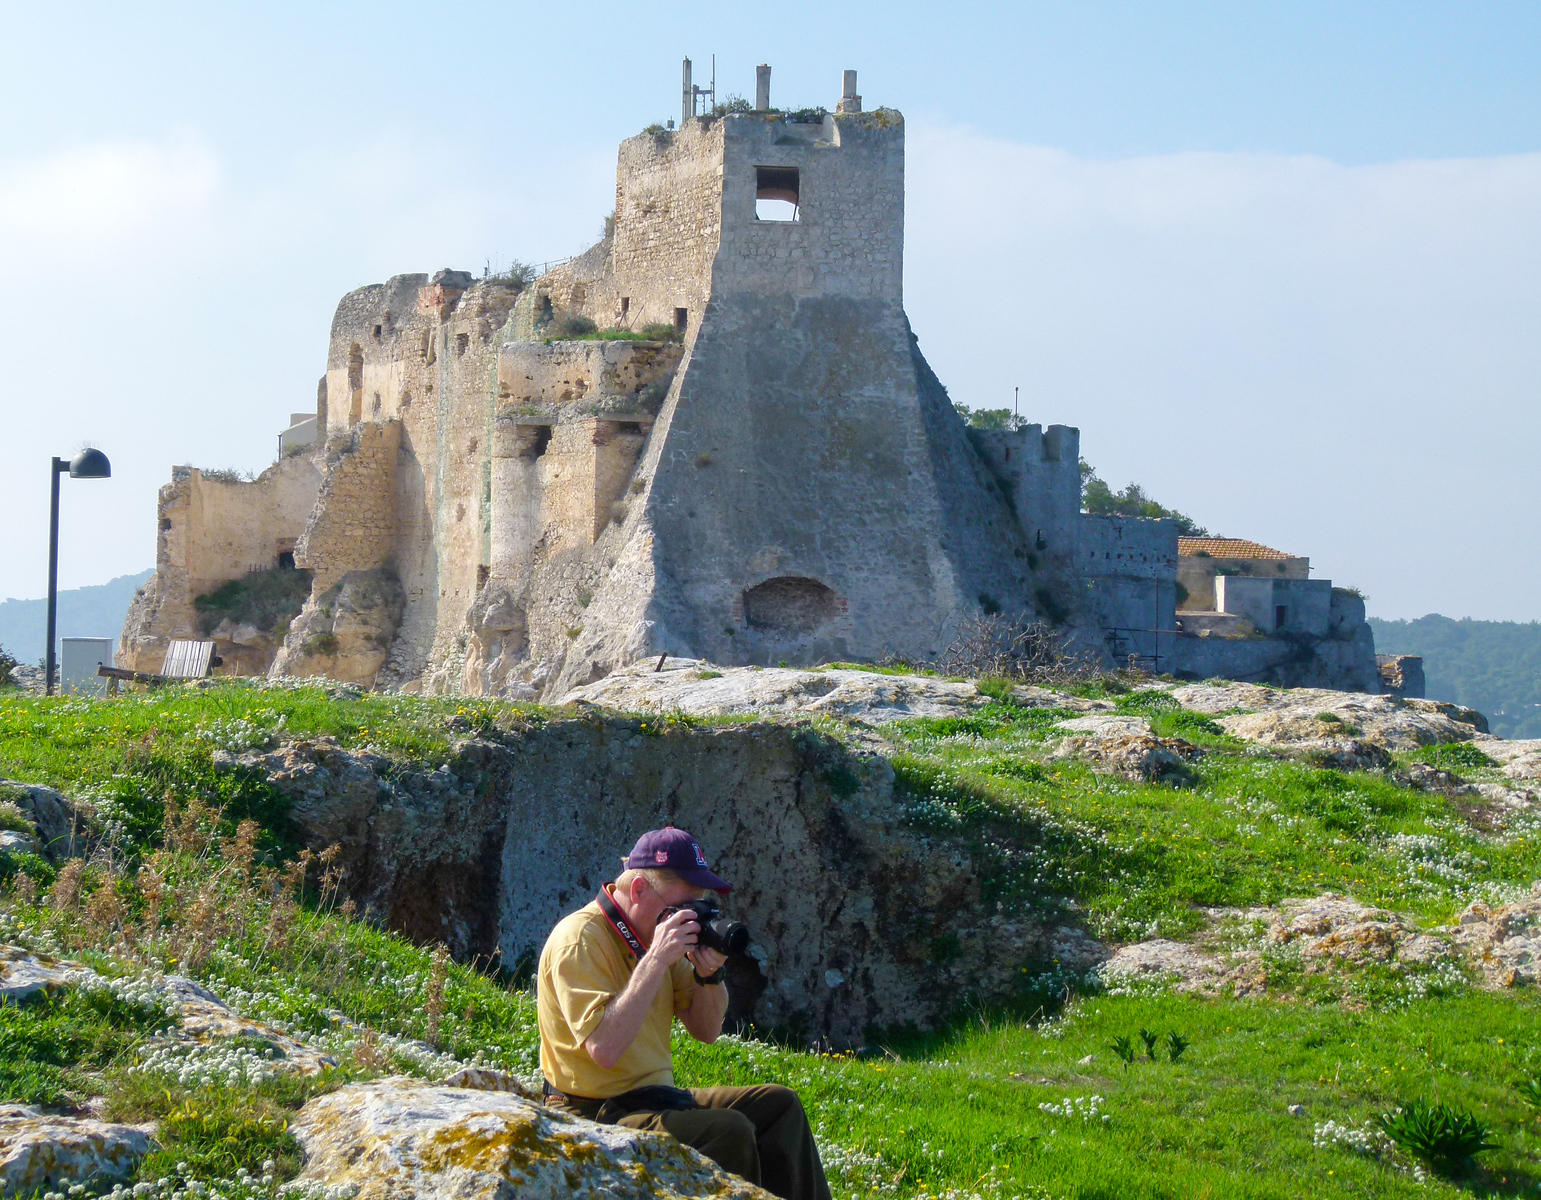 How did we know where to go in Italy? We did our research. Read our boomer travel tips on deciding where to go.